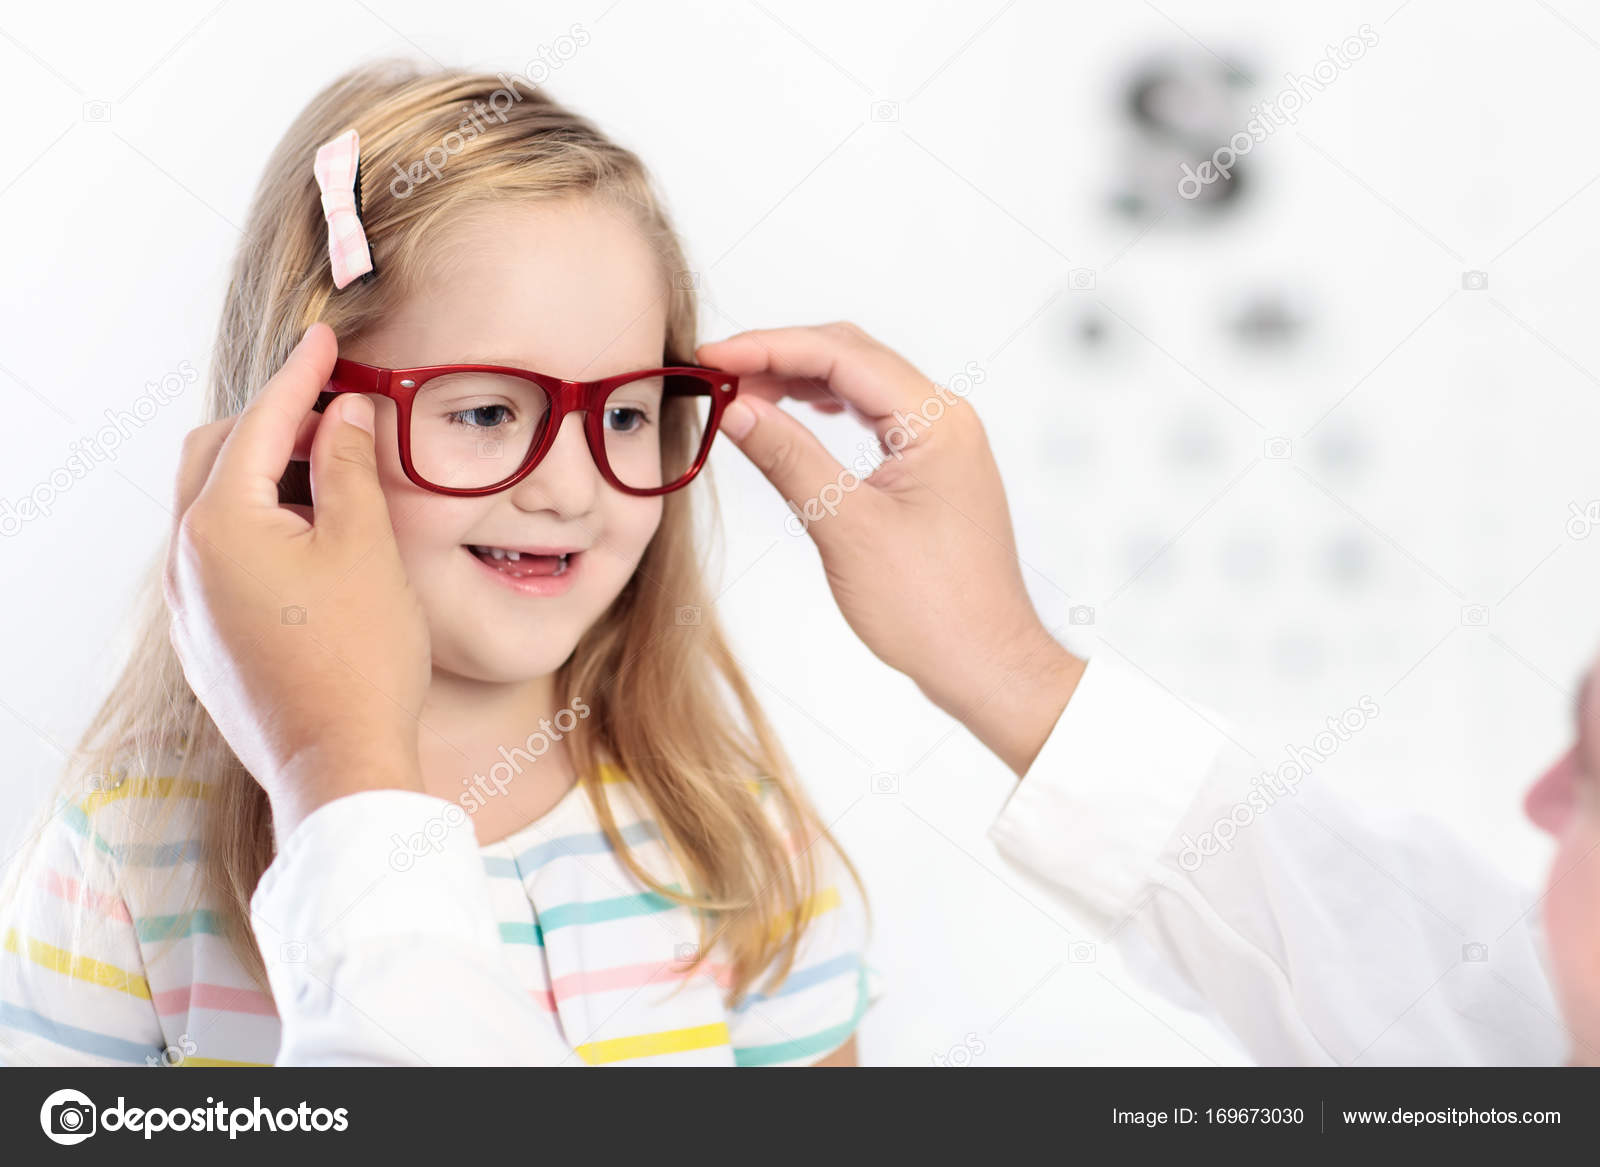 Child at eye sight test kid at optitian eyewear for kids stock child at eye sight test little kid selecting glasses at optician store eyesight measurement for school kids eye wear for children geenschuldenfo Images